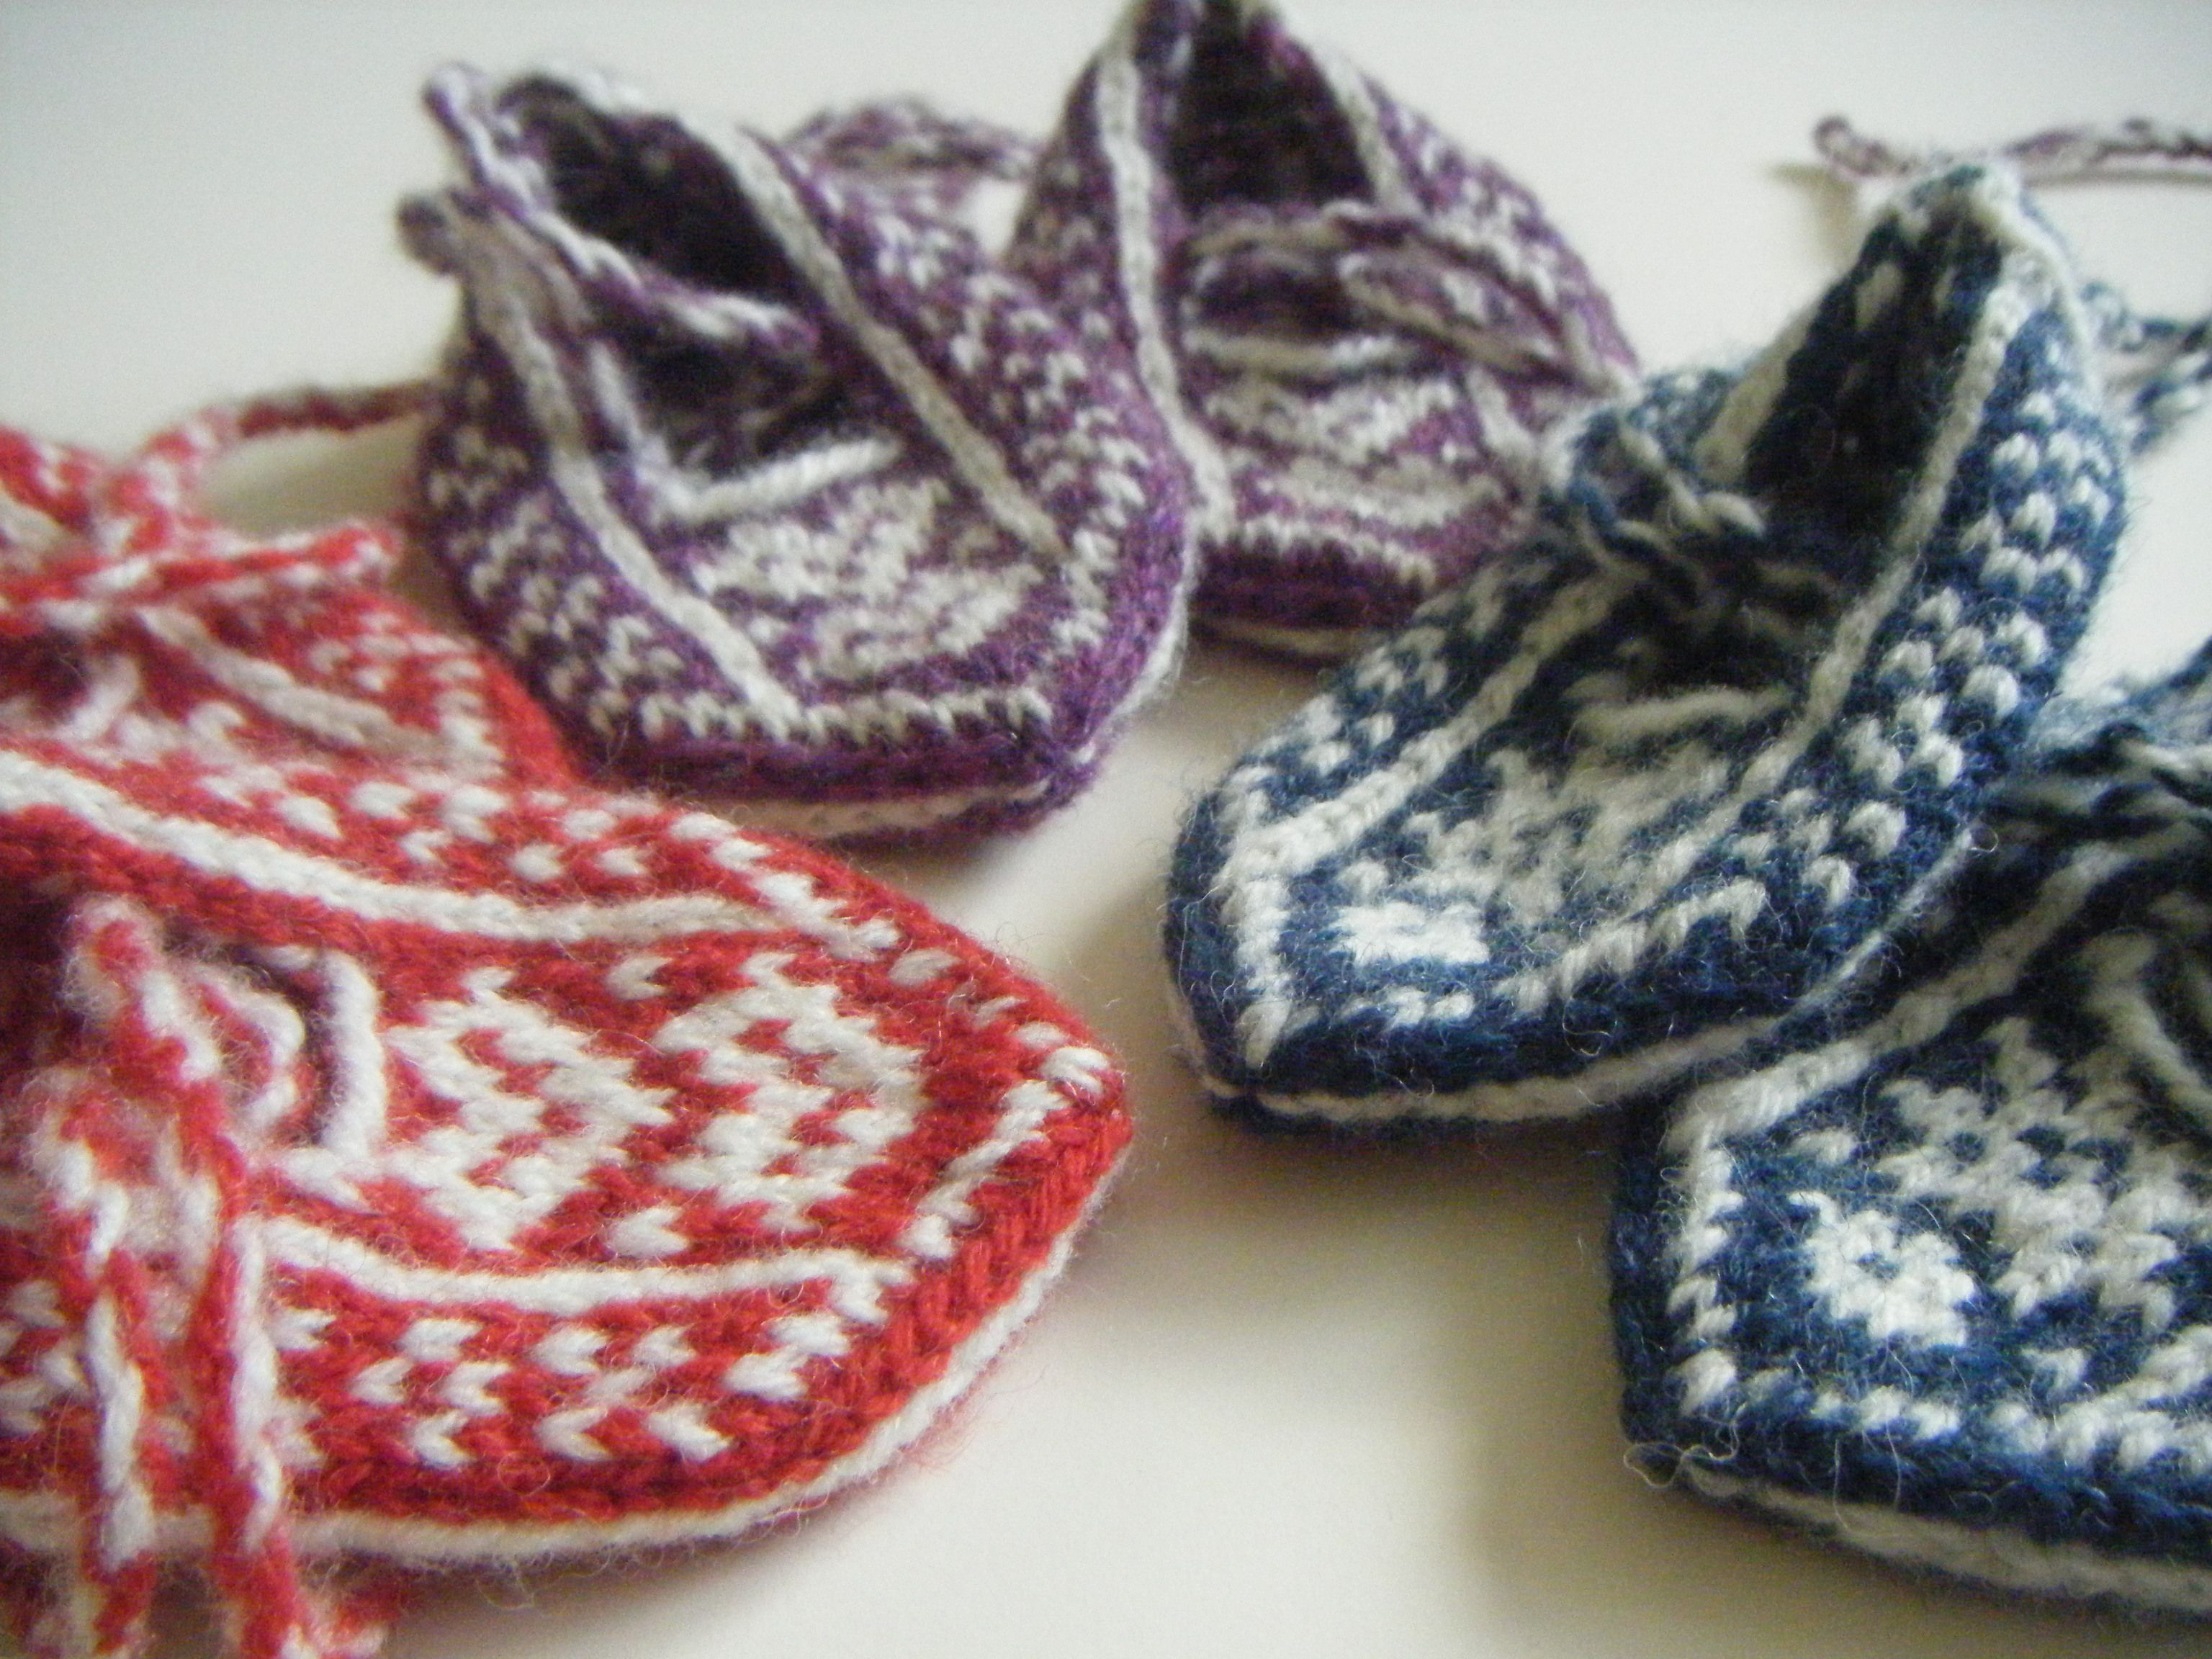 My kids slippers. Jamiesons of Shetland DK yarn